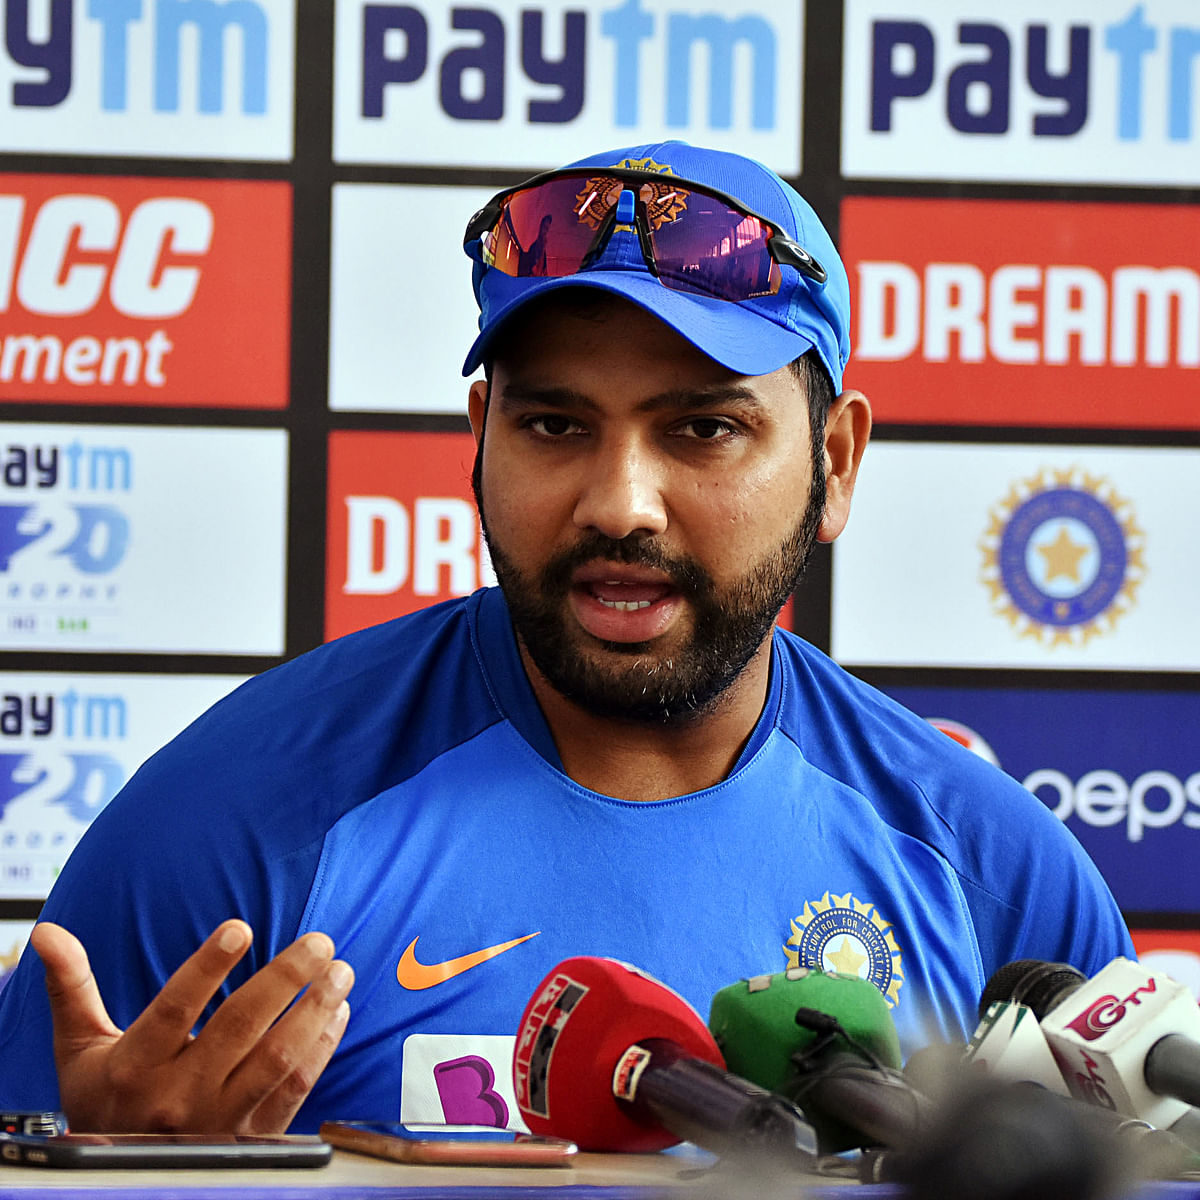 100th T20I game for India a moment of pride: Rohit